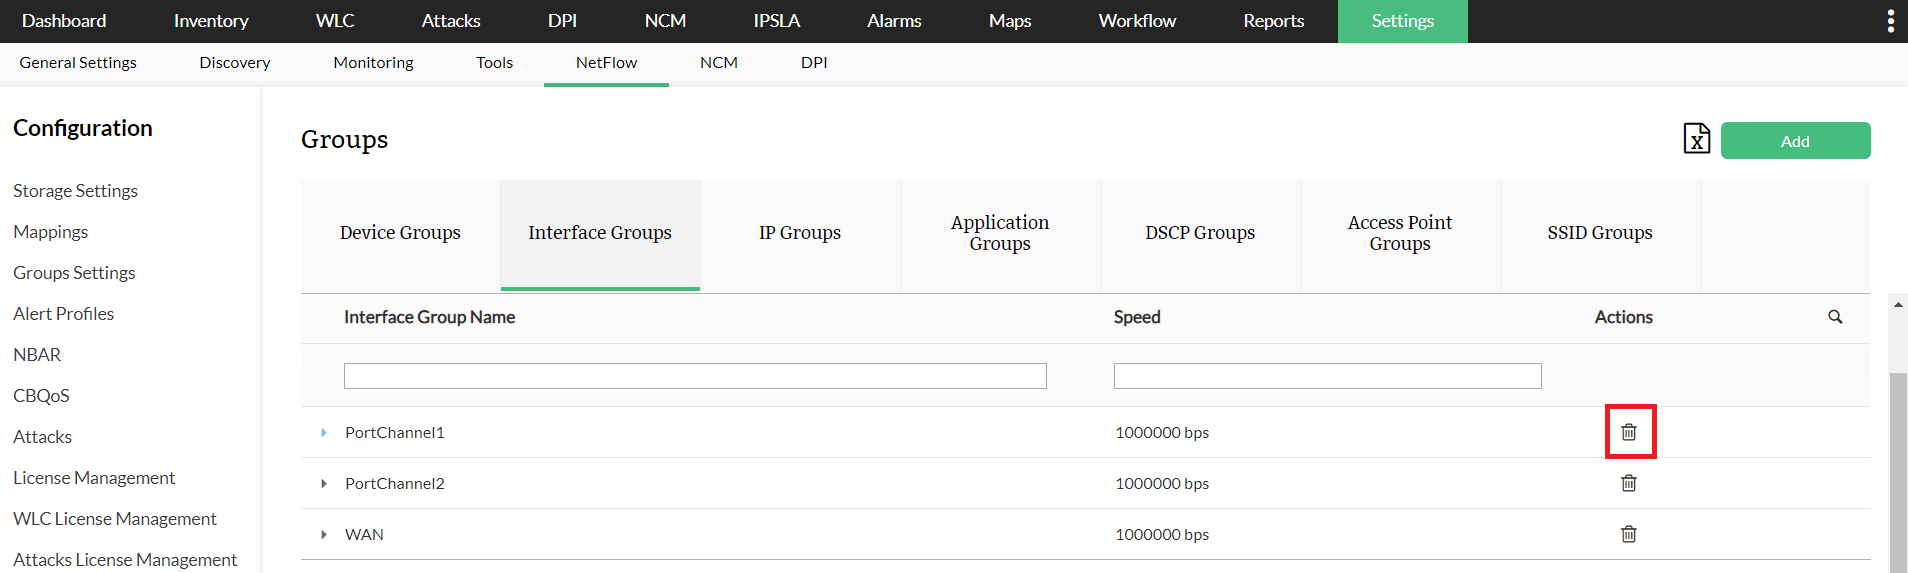 Delete Interface Group